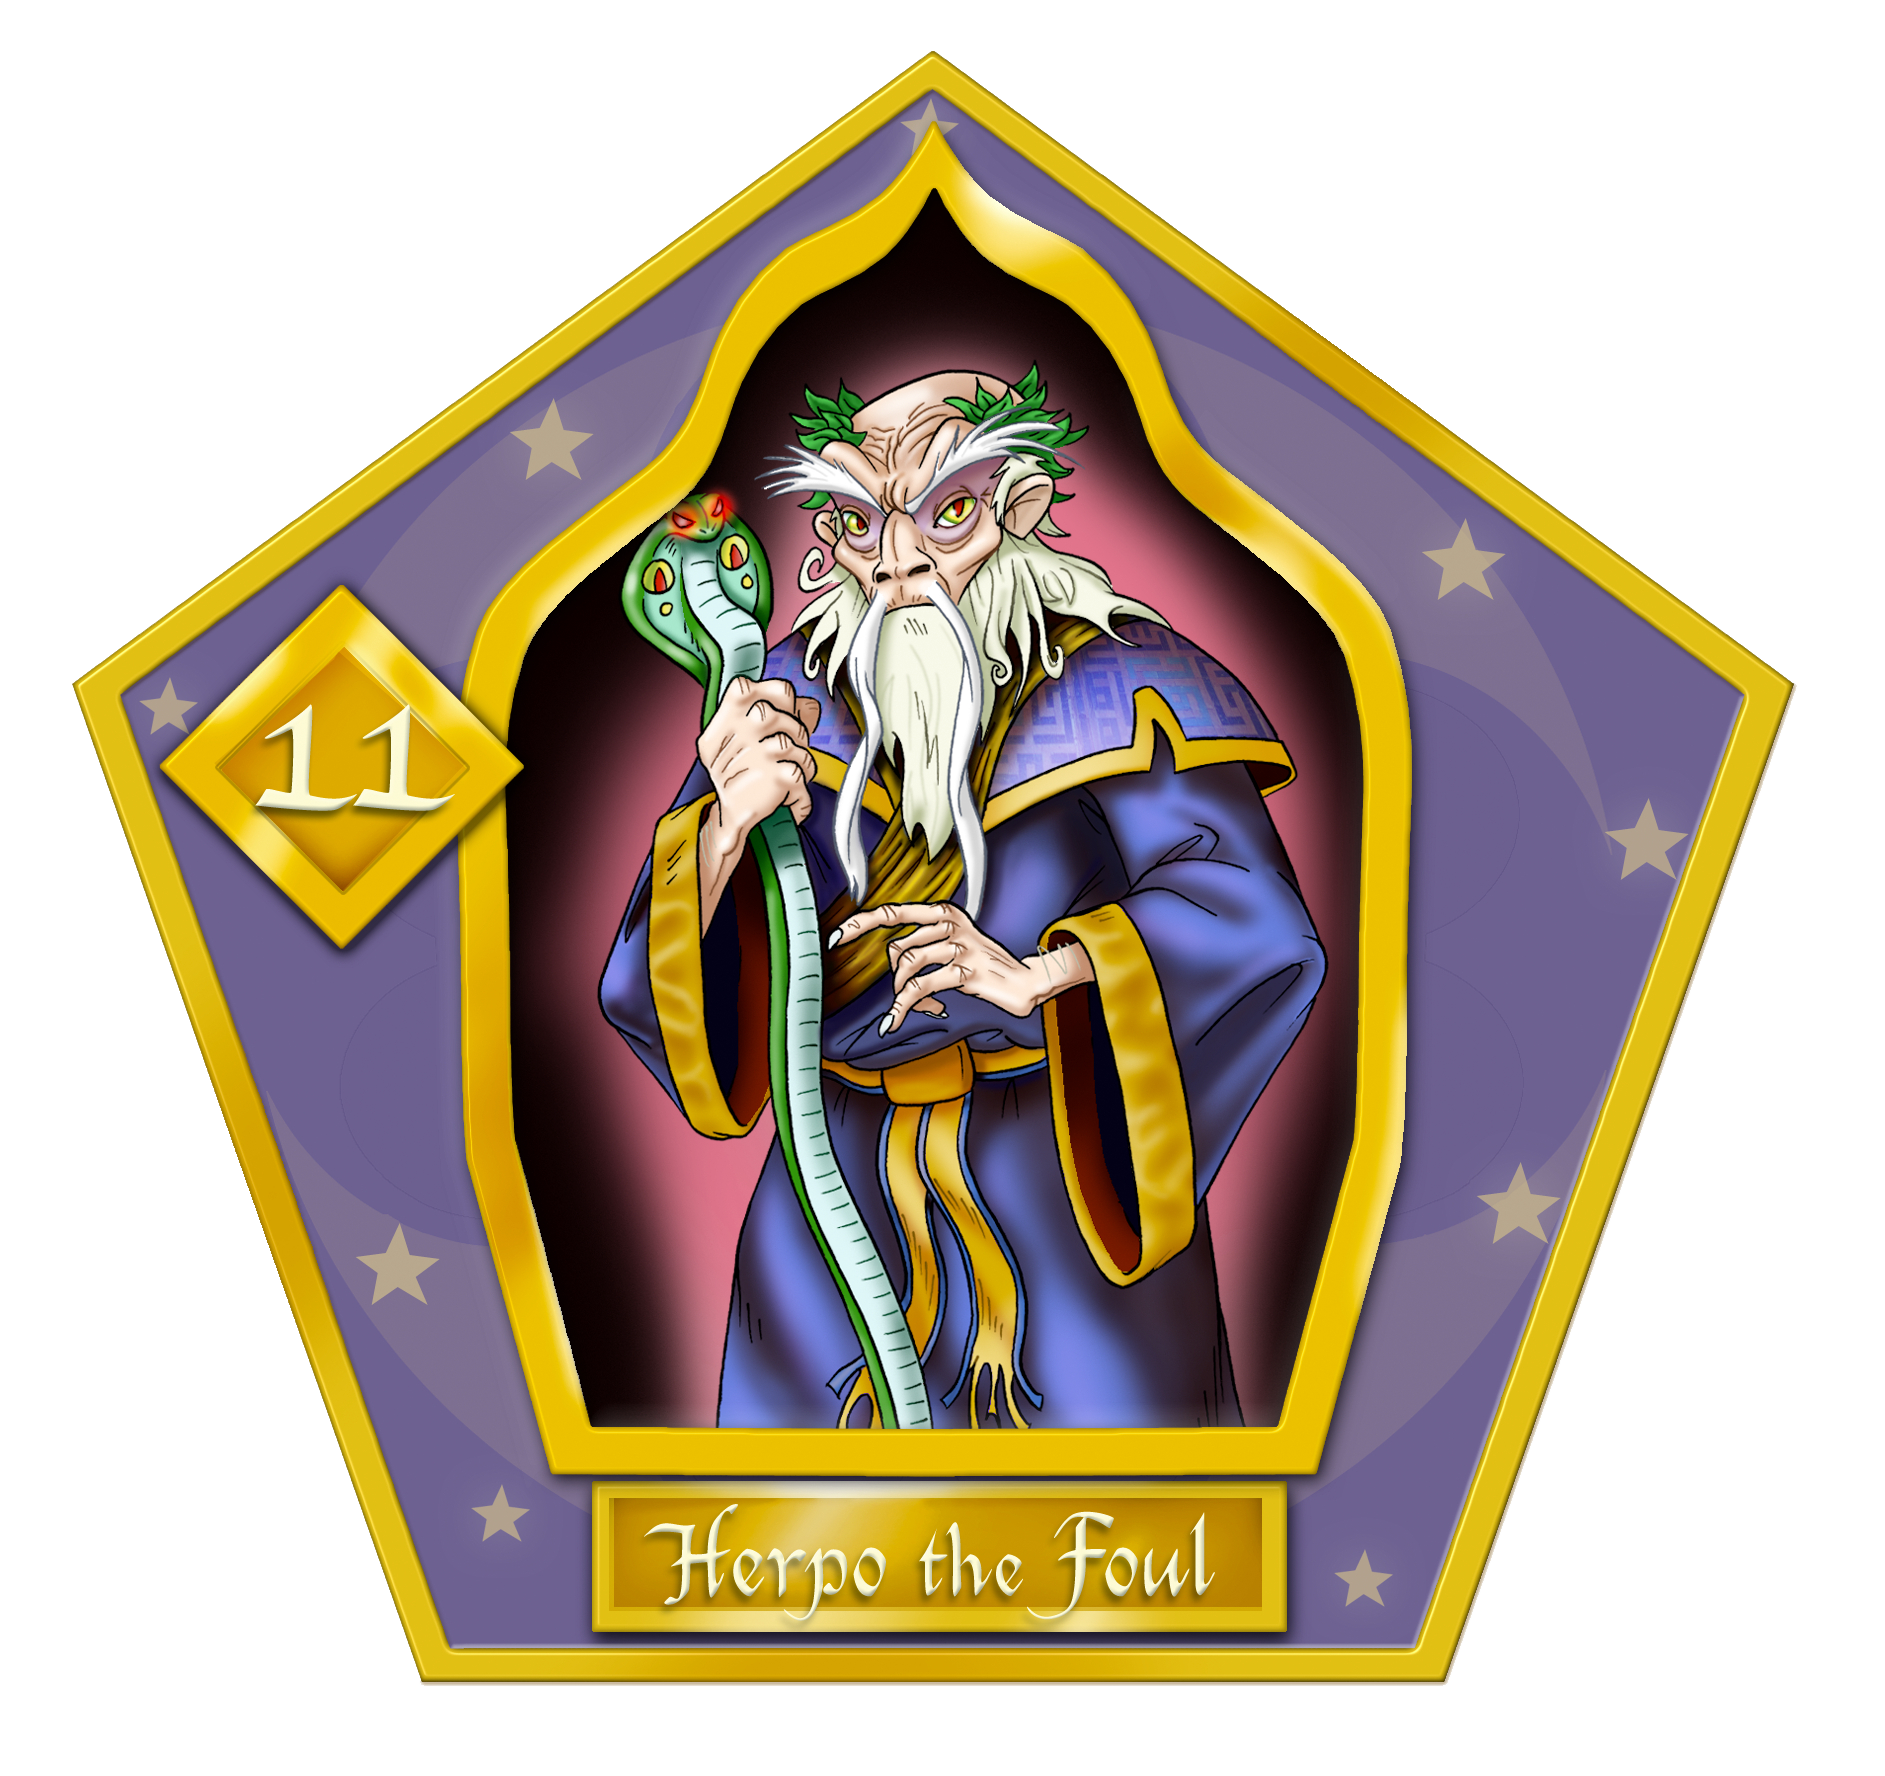 File:Herpo The Foul-11-chocFrogCard.png